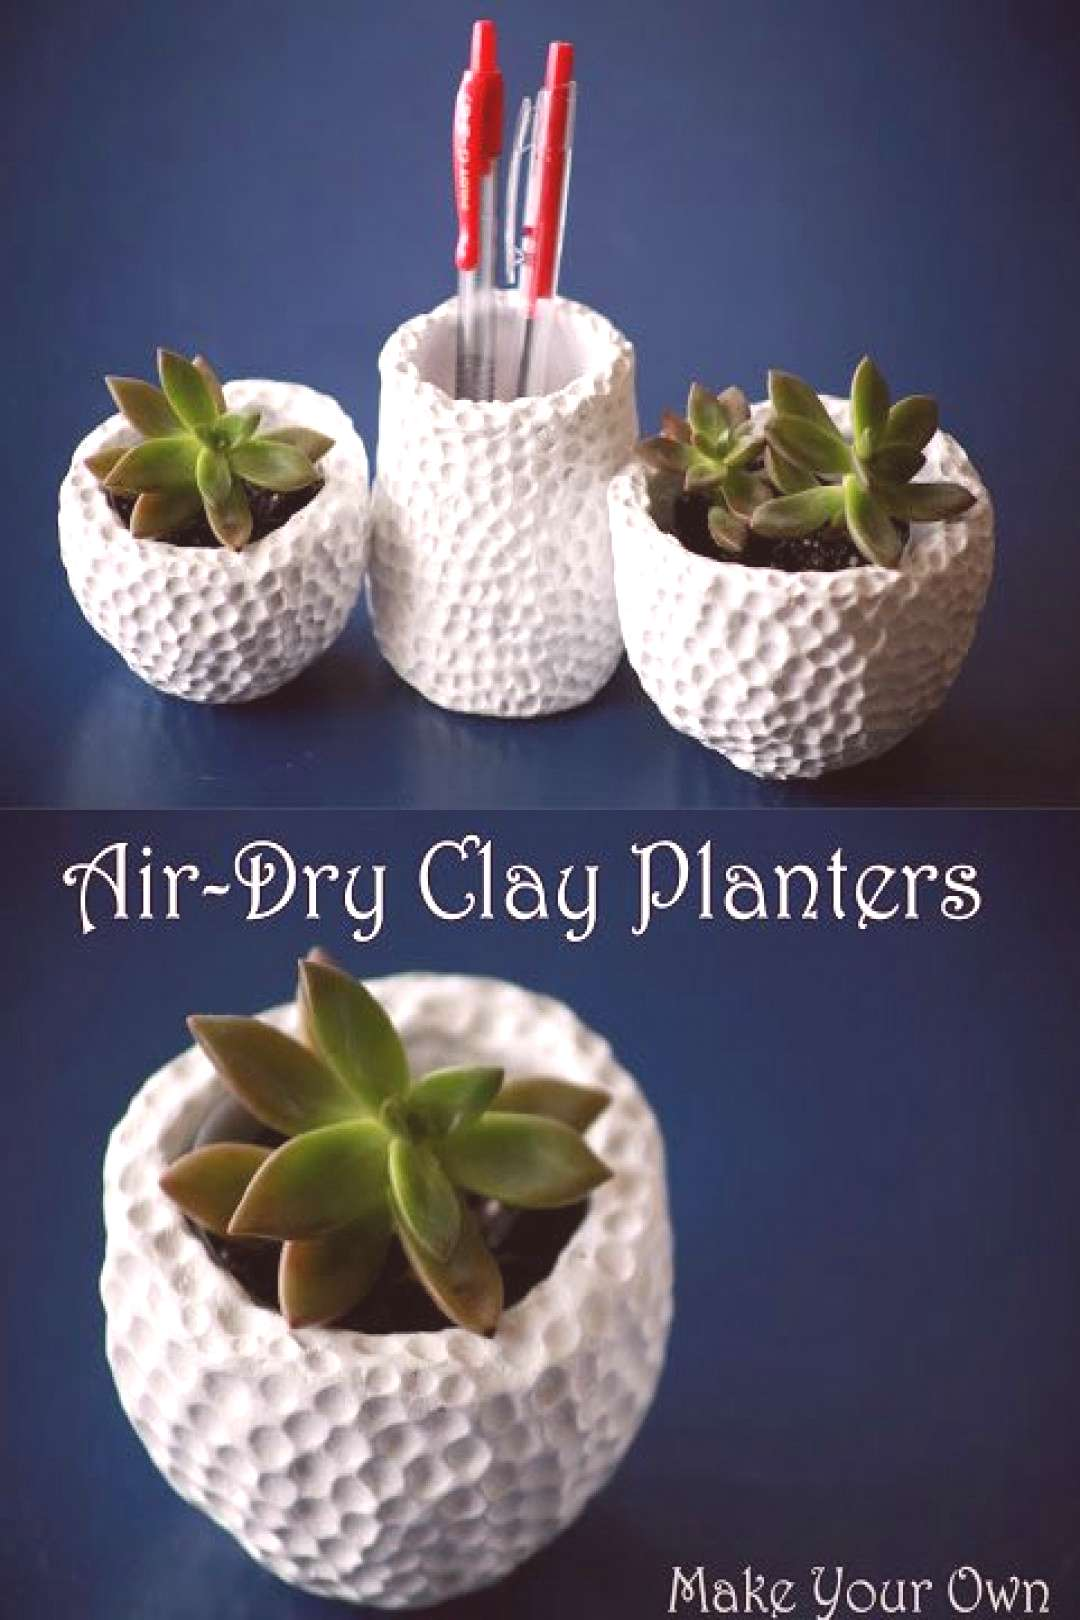 Make Your Own Air-Dry Clay Succulent Planters